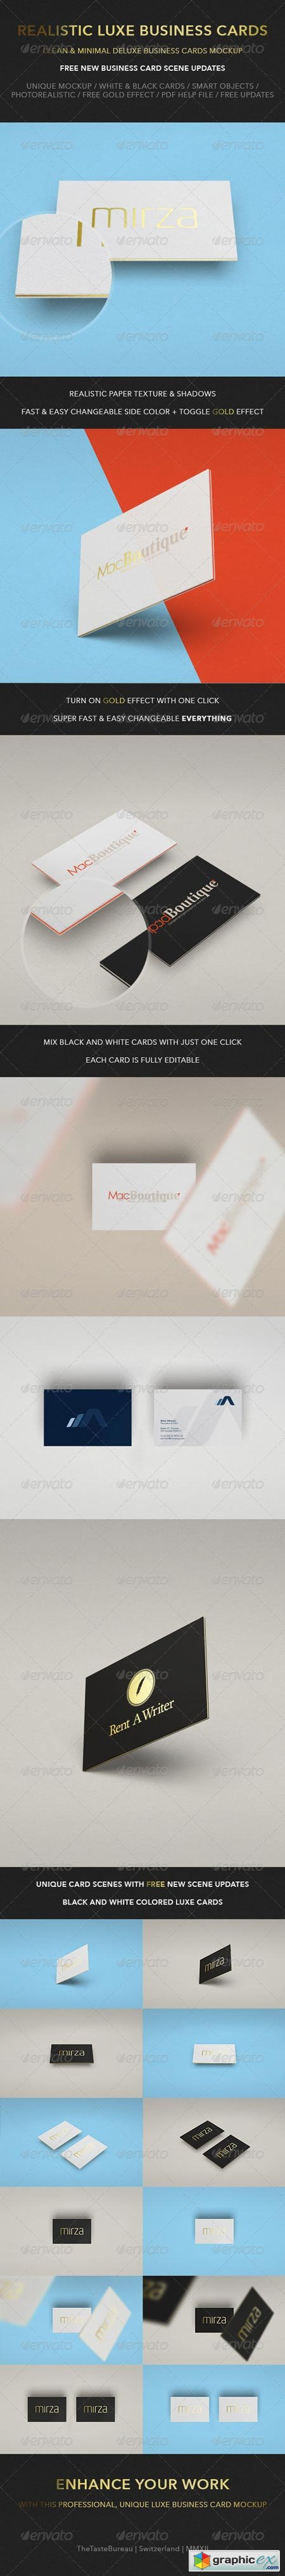 Realistic Luxe Business Card Mock-Up 6507623